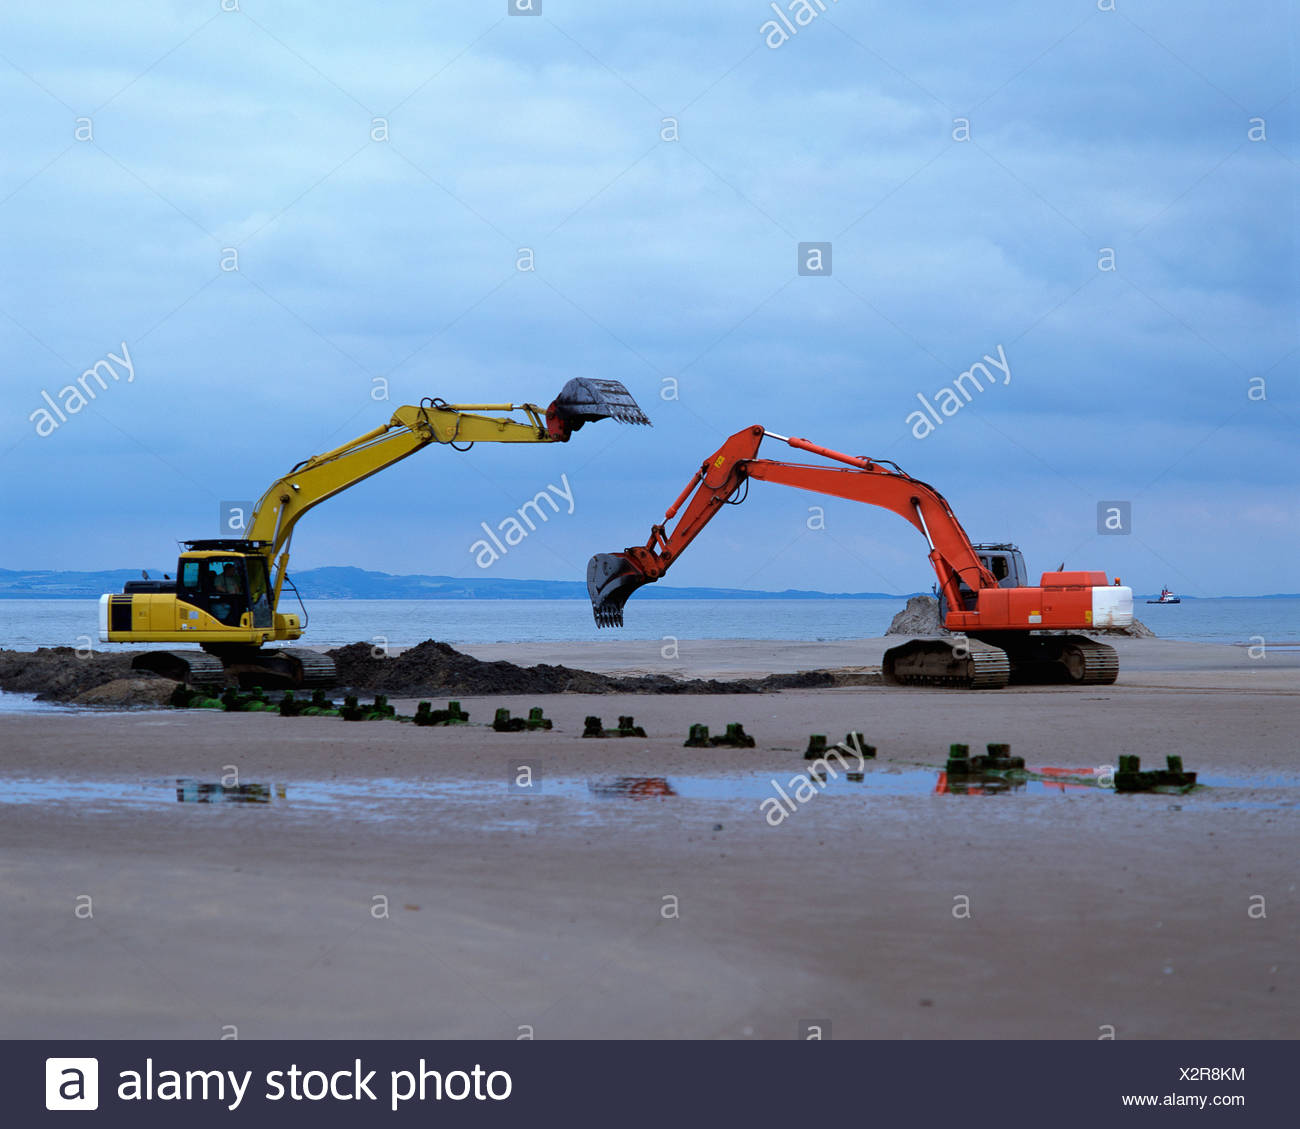 Earth movers on beach - Stock Image